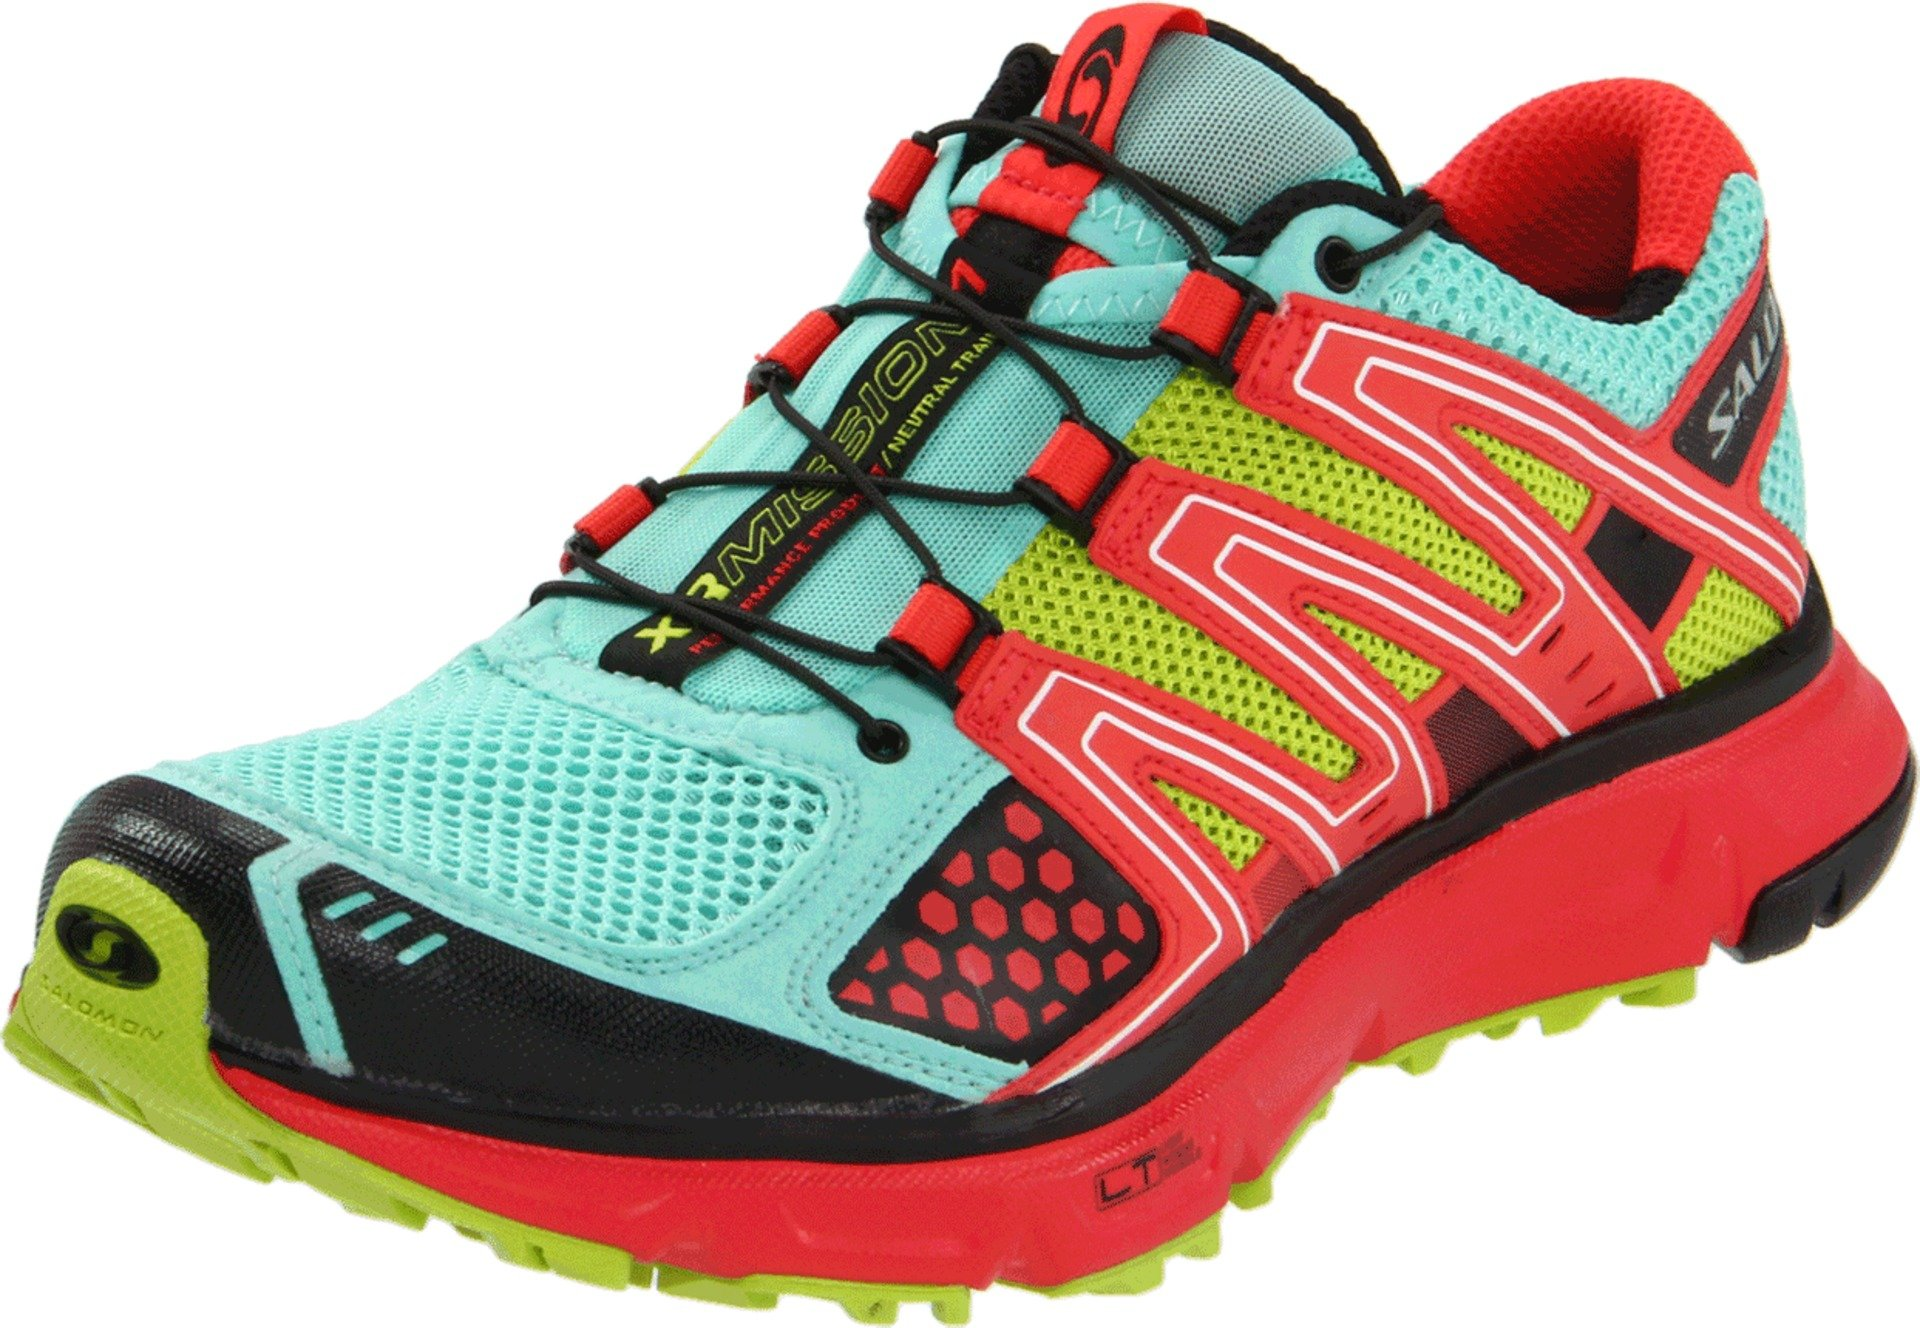 Salomon Women's XR Mission Running Shoe,Celedon/Papaya/Pop Green,7.5 M US by Salomon